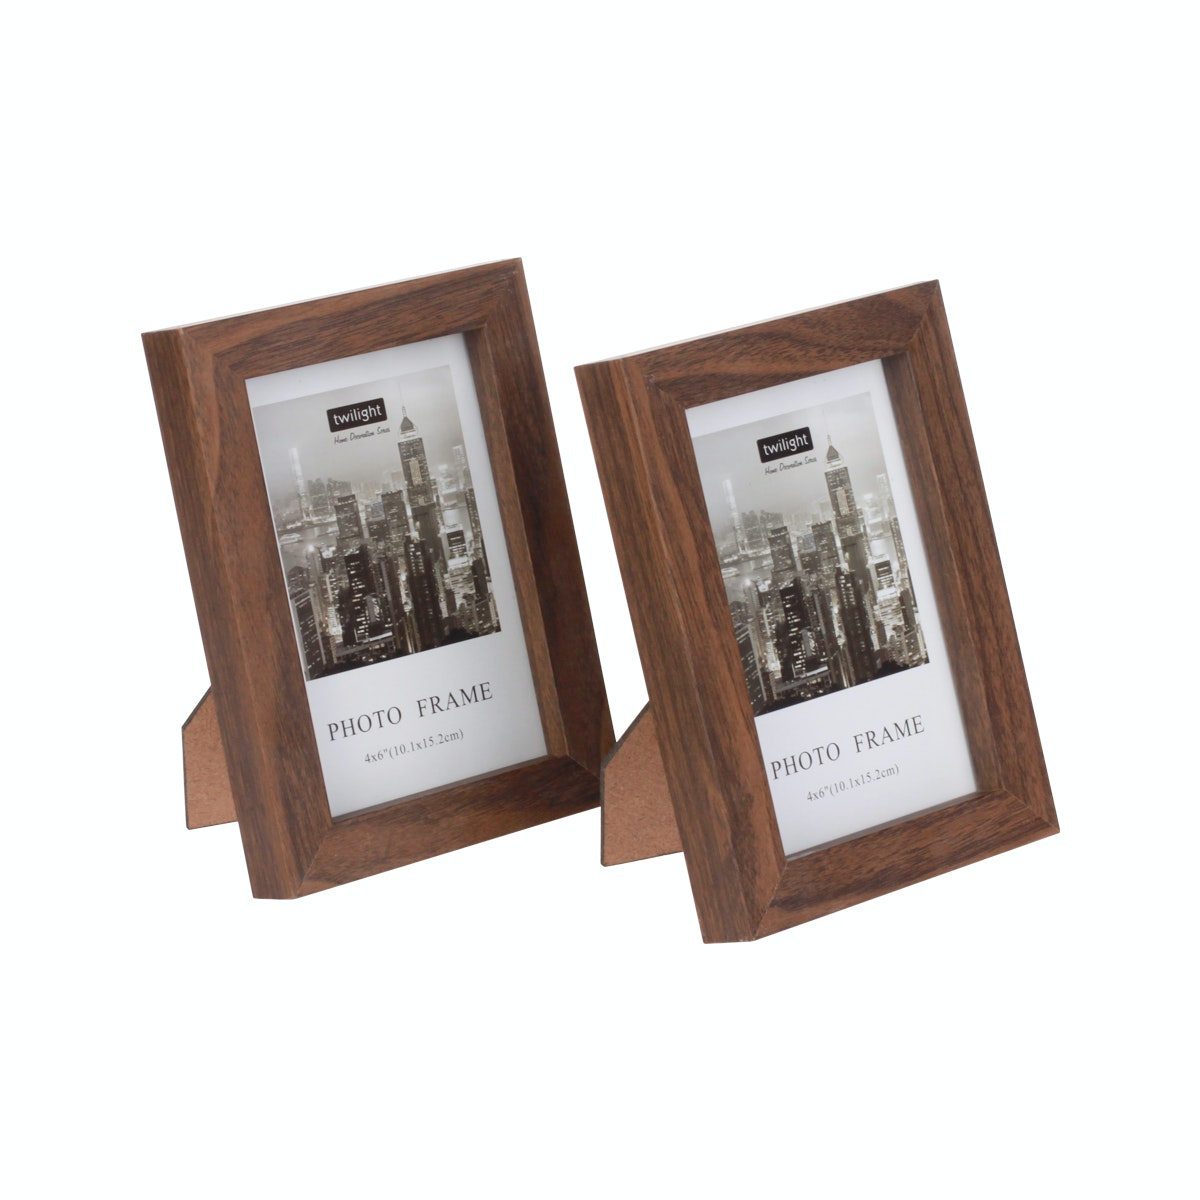 Informa Photo Frame Twilight 4X6